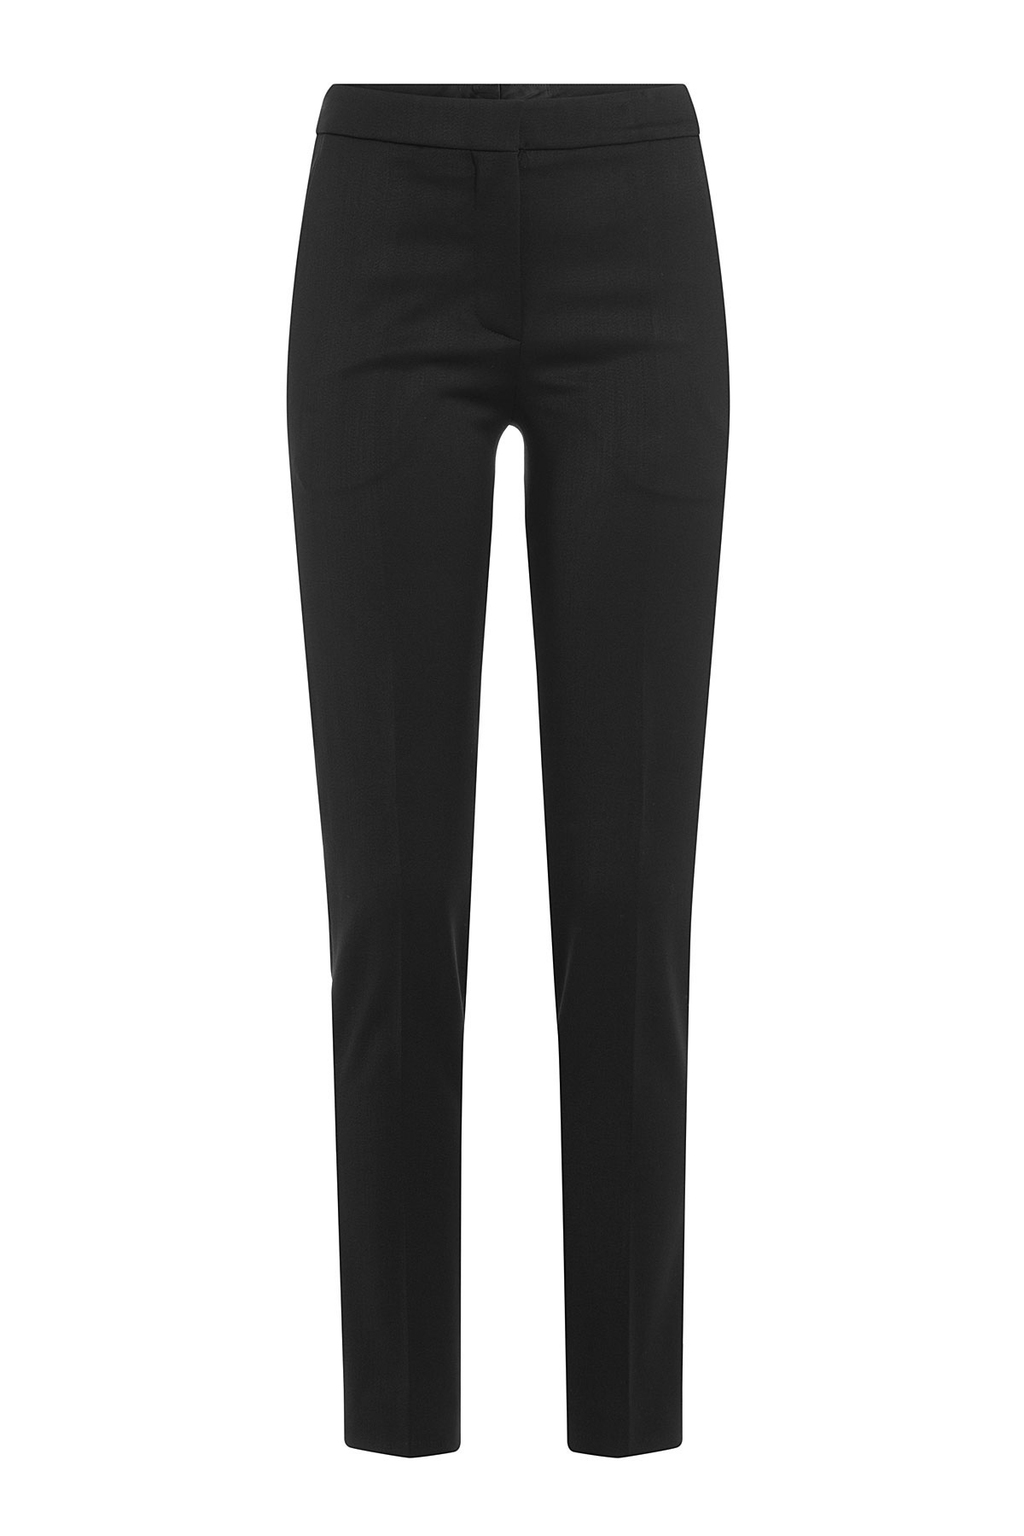 Virgin Wool Pants - length: standard; pattern: plain; waist: mid/regular rise; predominant colour: black; occasions: work; fibres: wool - 100%; fit: straight leg; pattern type: fabric; texture group: woven light midweight; style: standard; wardrobe: basic; season: a/w 2016